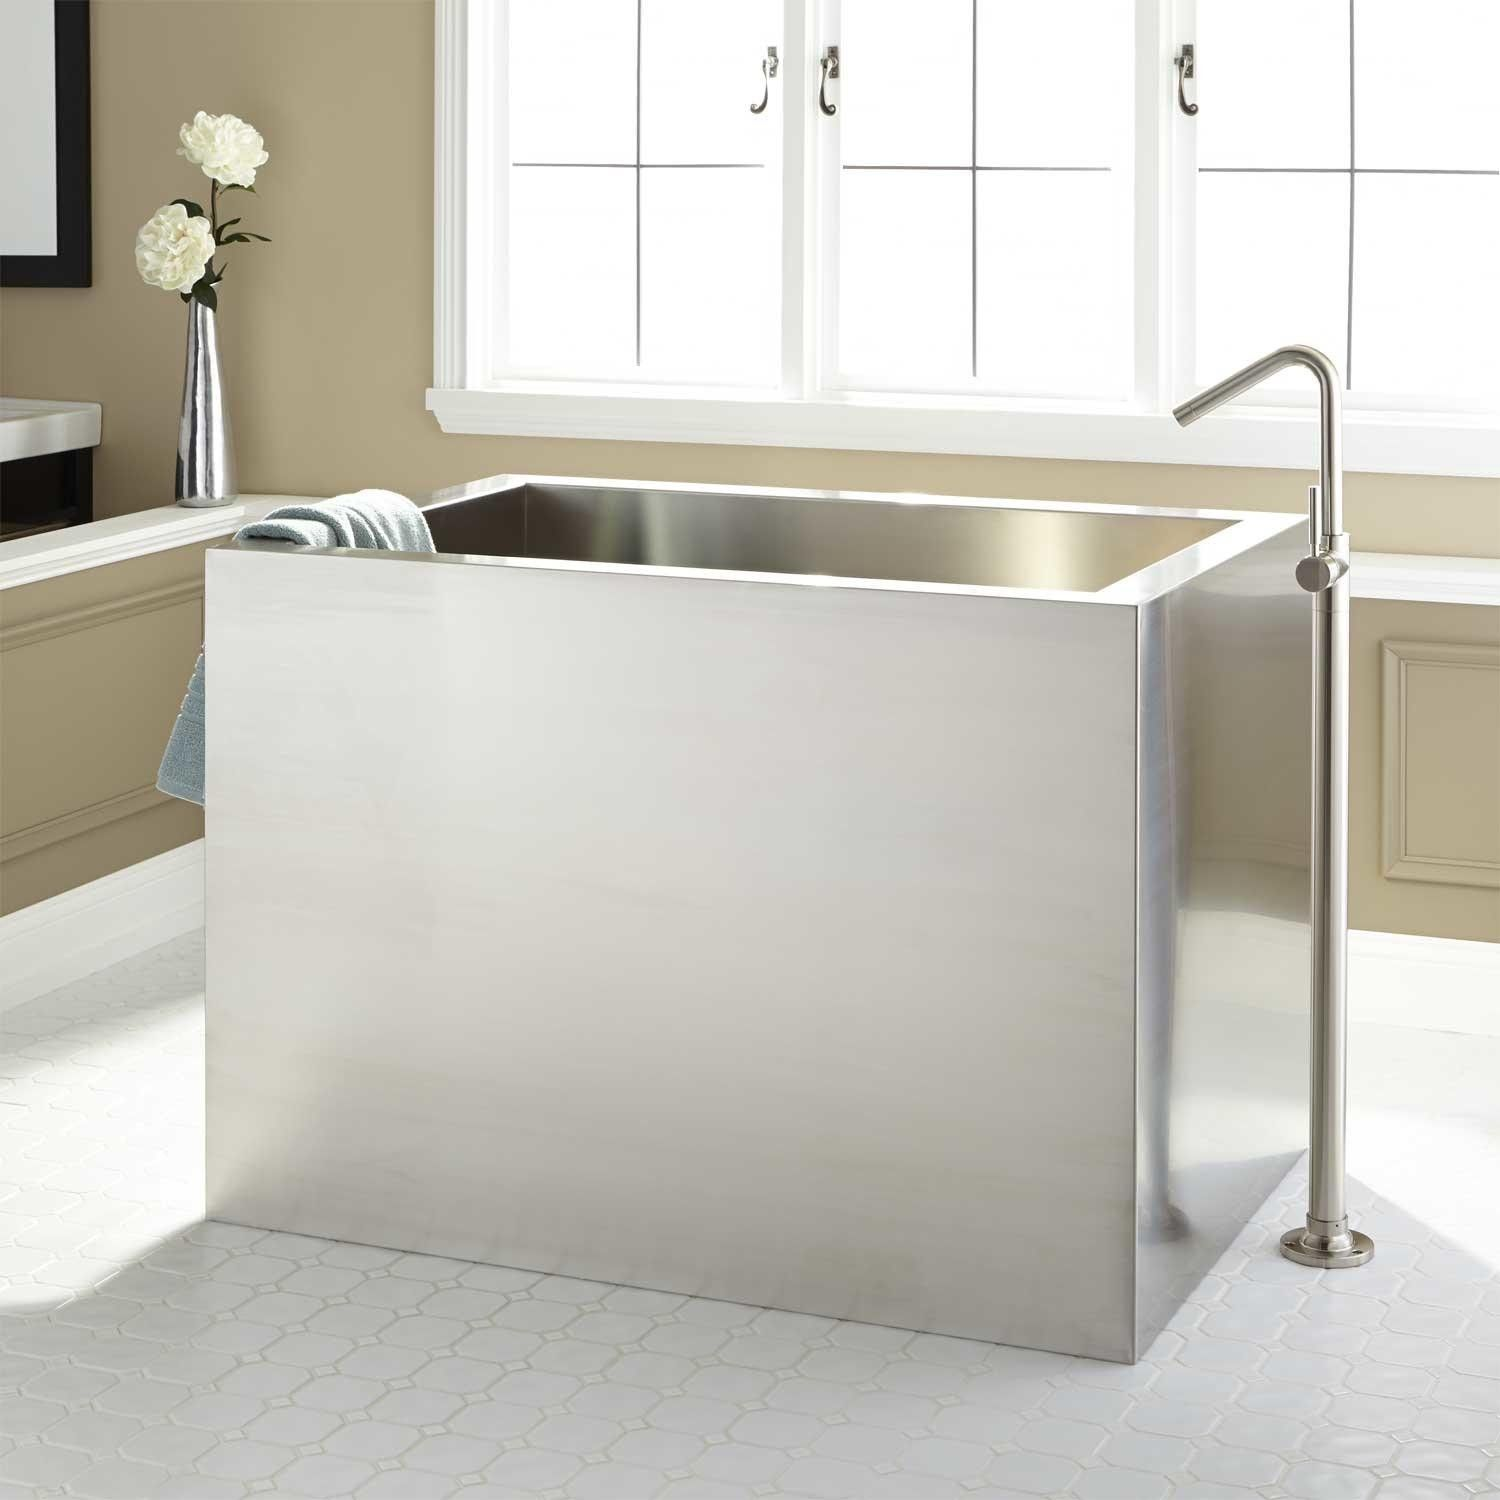 48 Amery Brushed Stainless Steel Soaking Tub Oil Rubbed